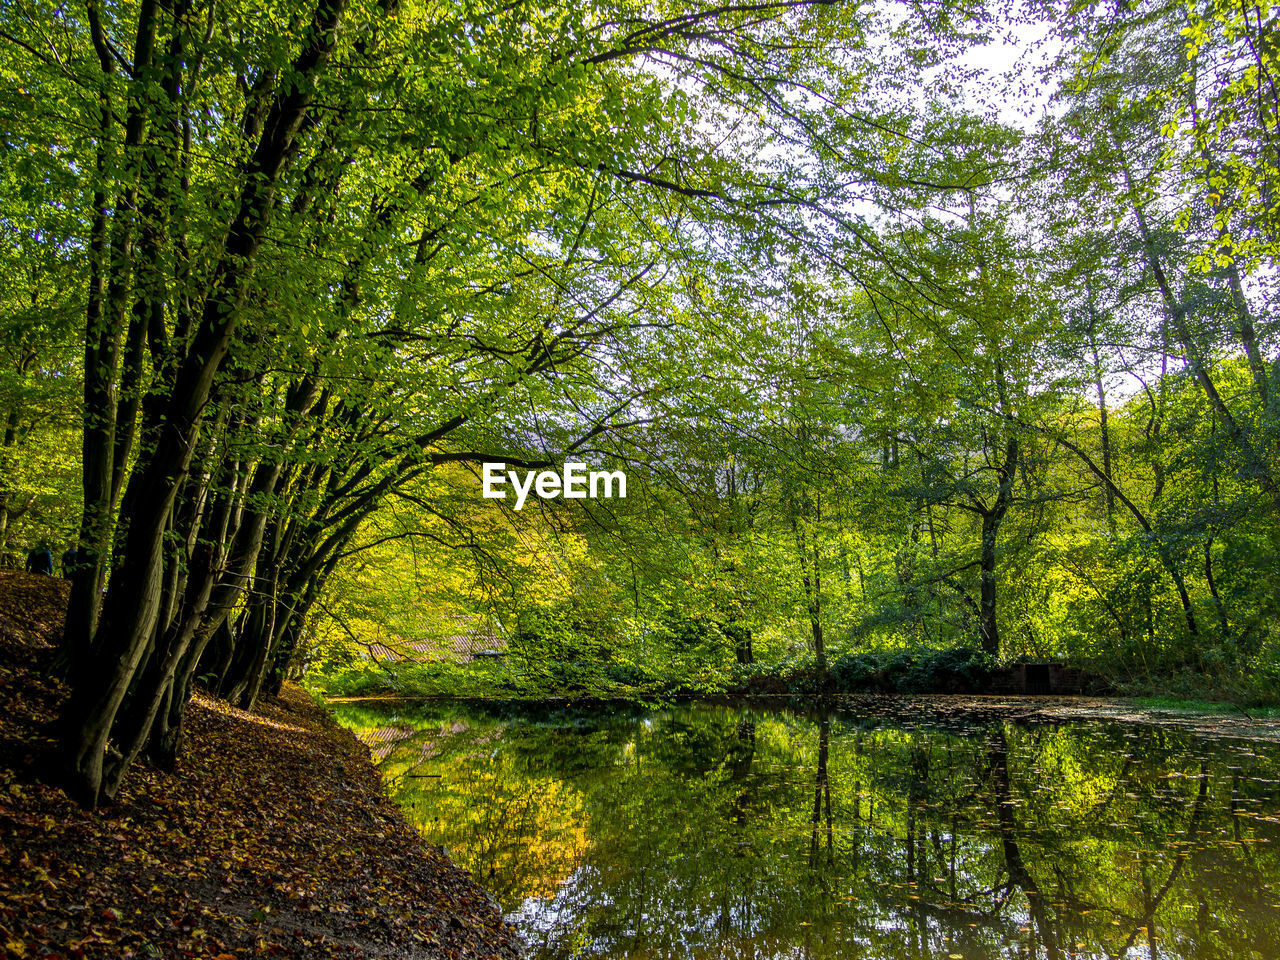 tree, plant, forest, water, tranquility, nature, beauty in nature, land, growth, lake, green color, scenics - nature, tranquil scene, no people, reflection, woodland, day, branch, outdoors